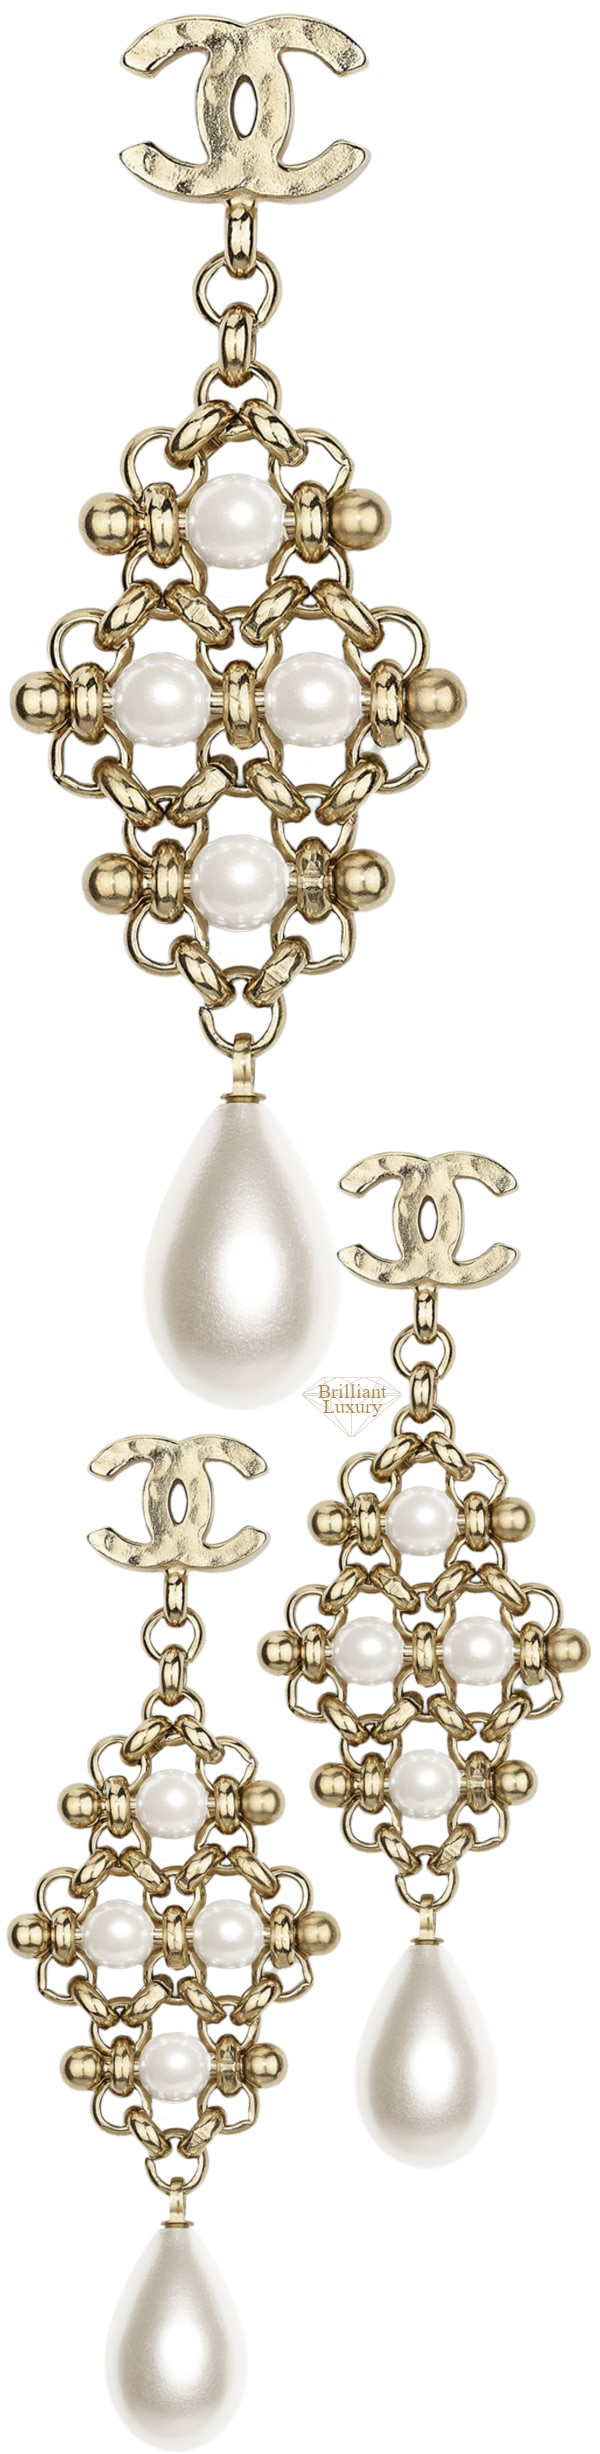 CHANEL Metal Imitation Pearl Earrings #jewelry